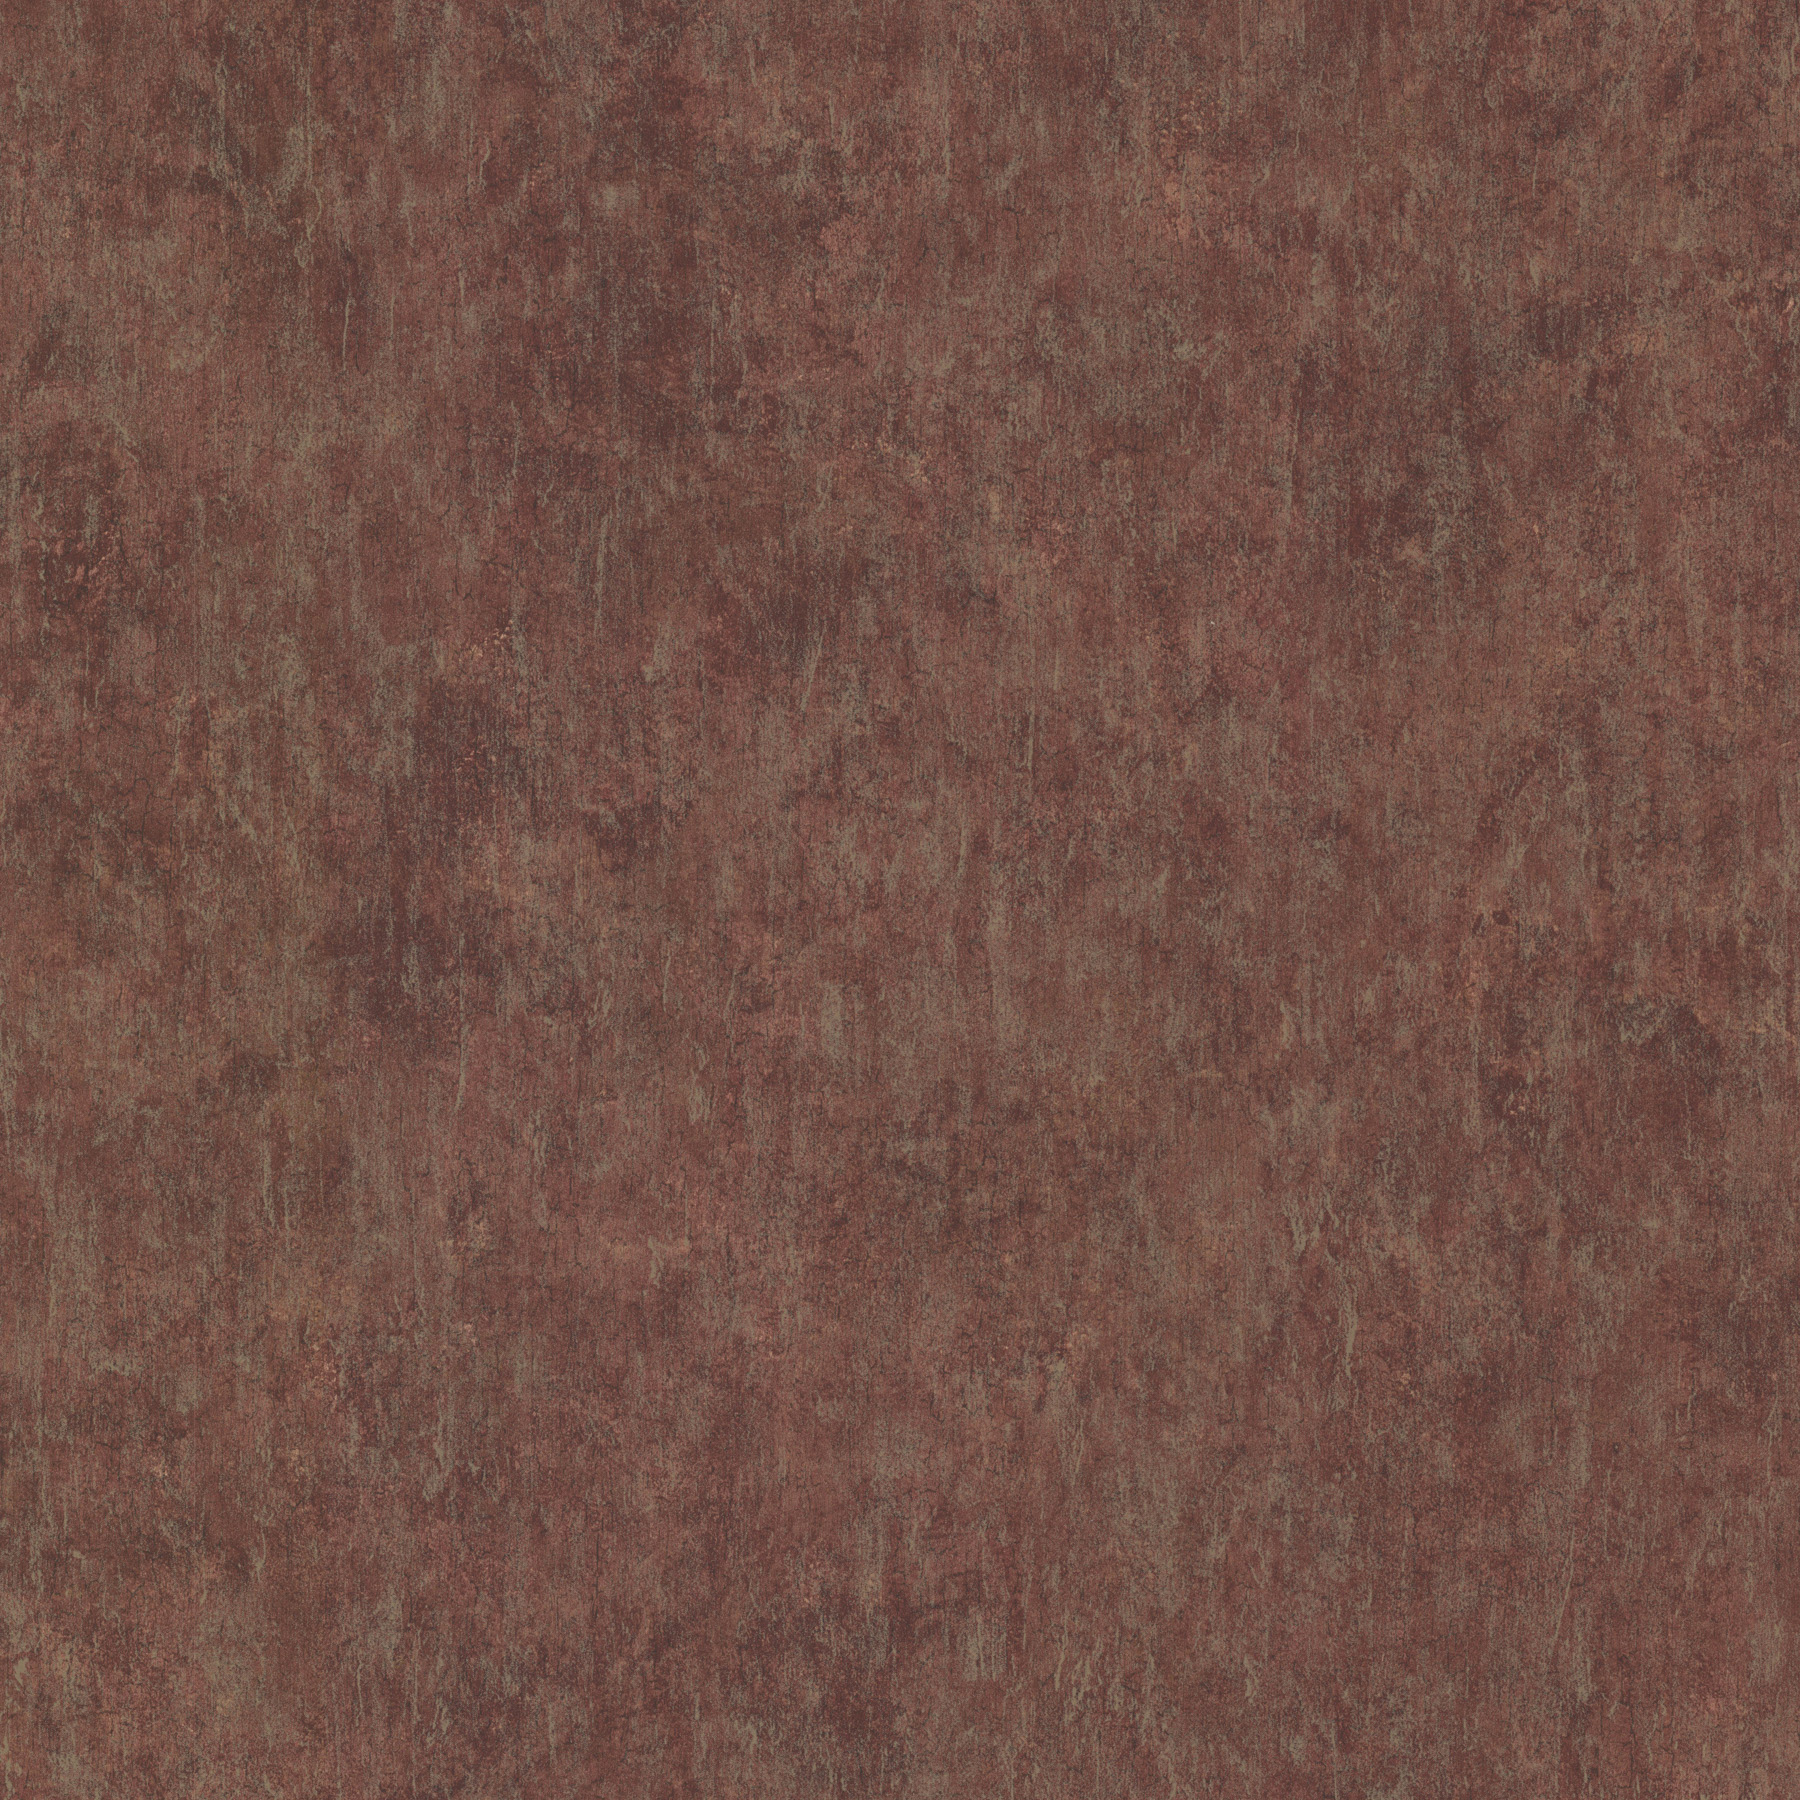 Picture of Atoka Burgundy Country Vine Texture Wallpaper